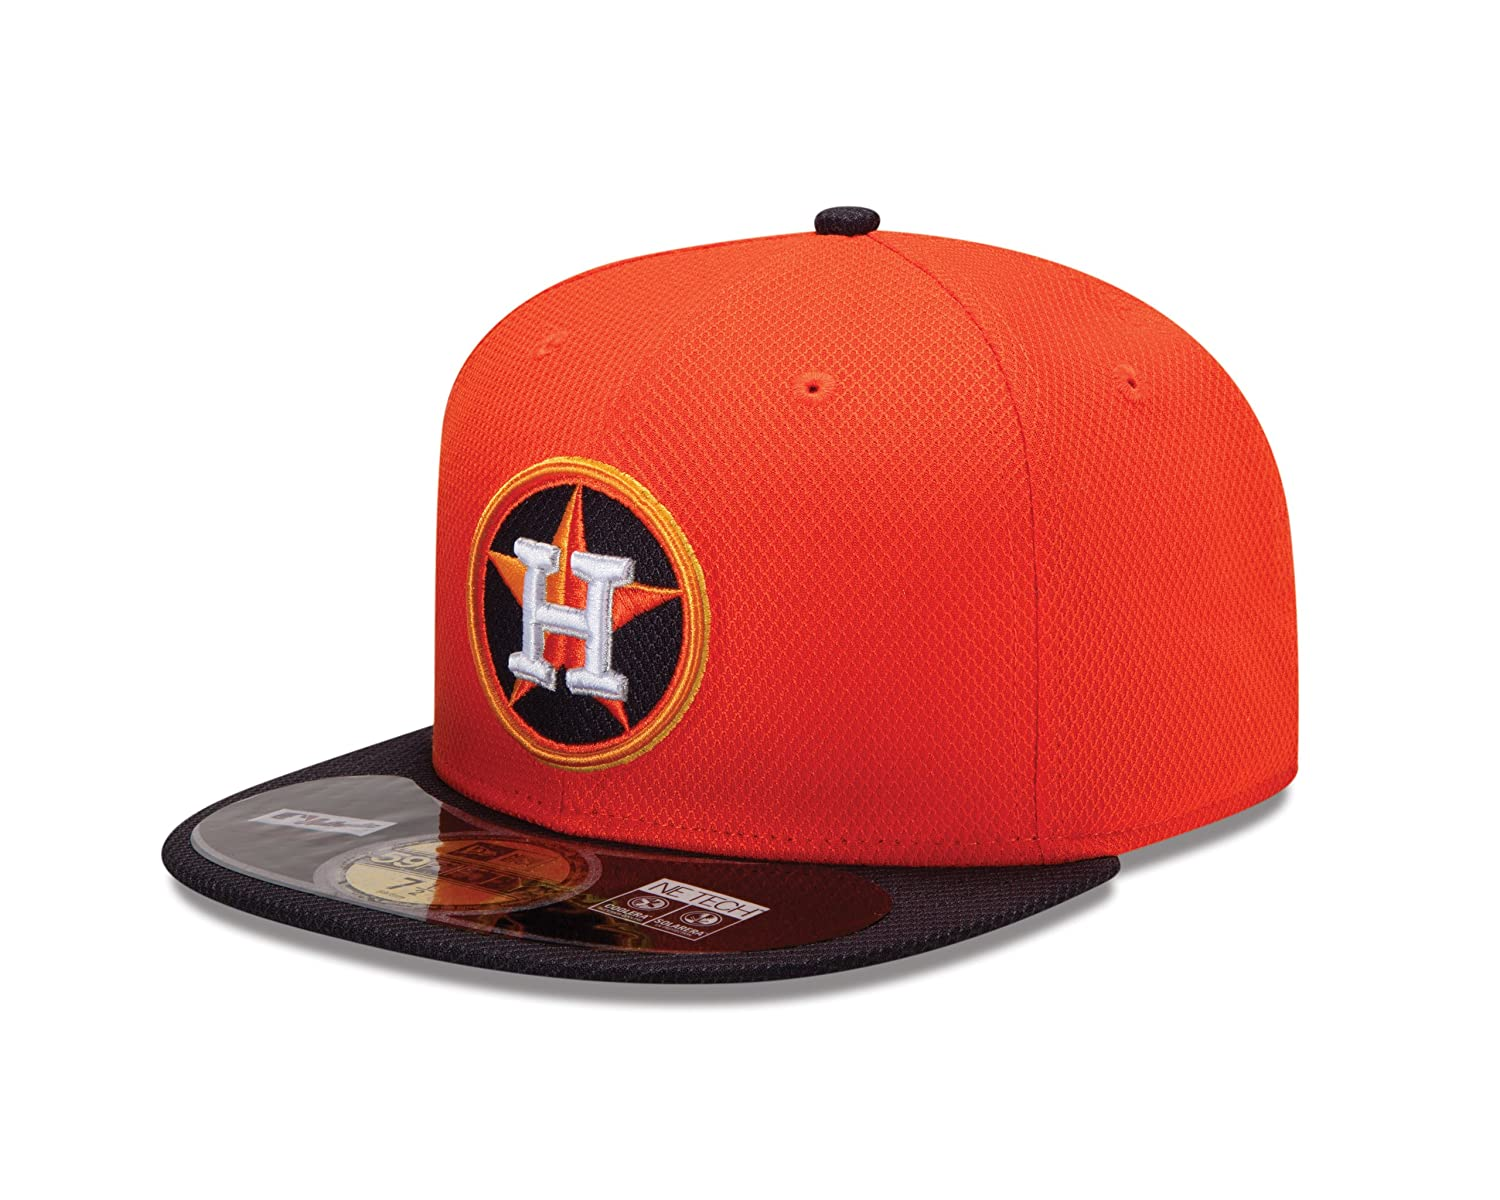 MLB Houston Astros Batting Practice 59Fifty Baseball Cap, Orange/Black crew neck color block pullover knitwear